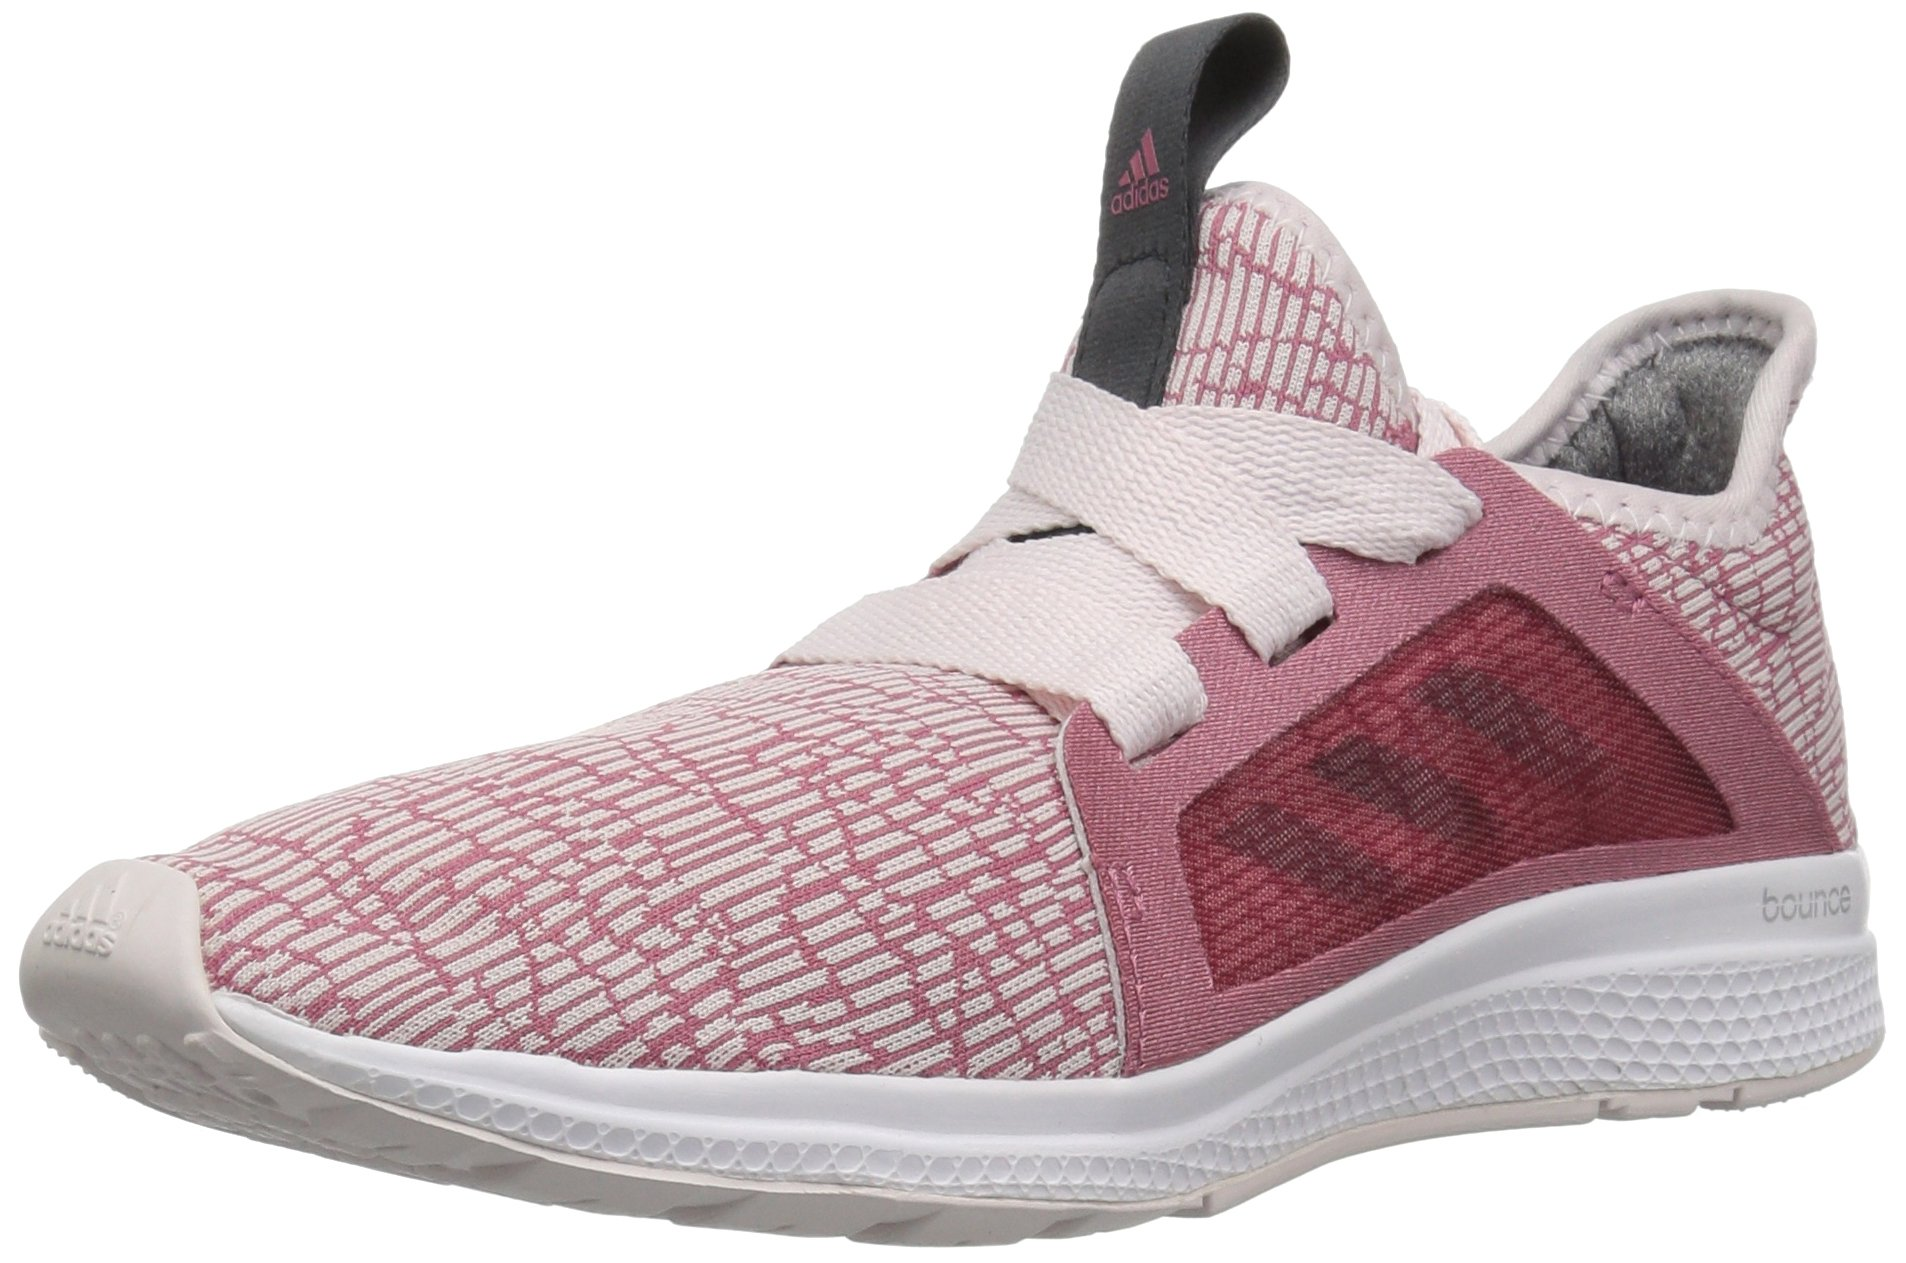 adidas Unisex Edge lux Running Shoe, Orchid Tint/Carbon/Trace Maroon, 4 M US Big Kid